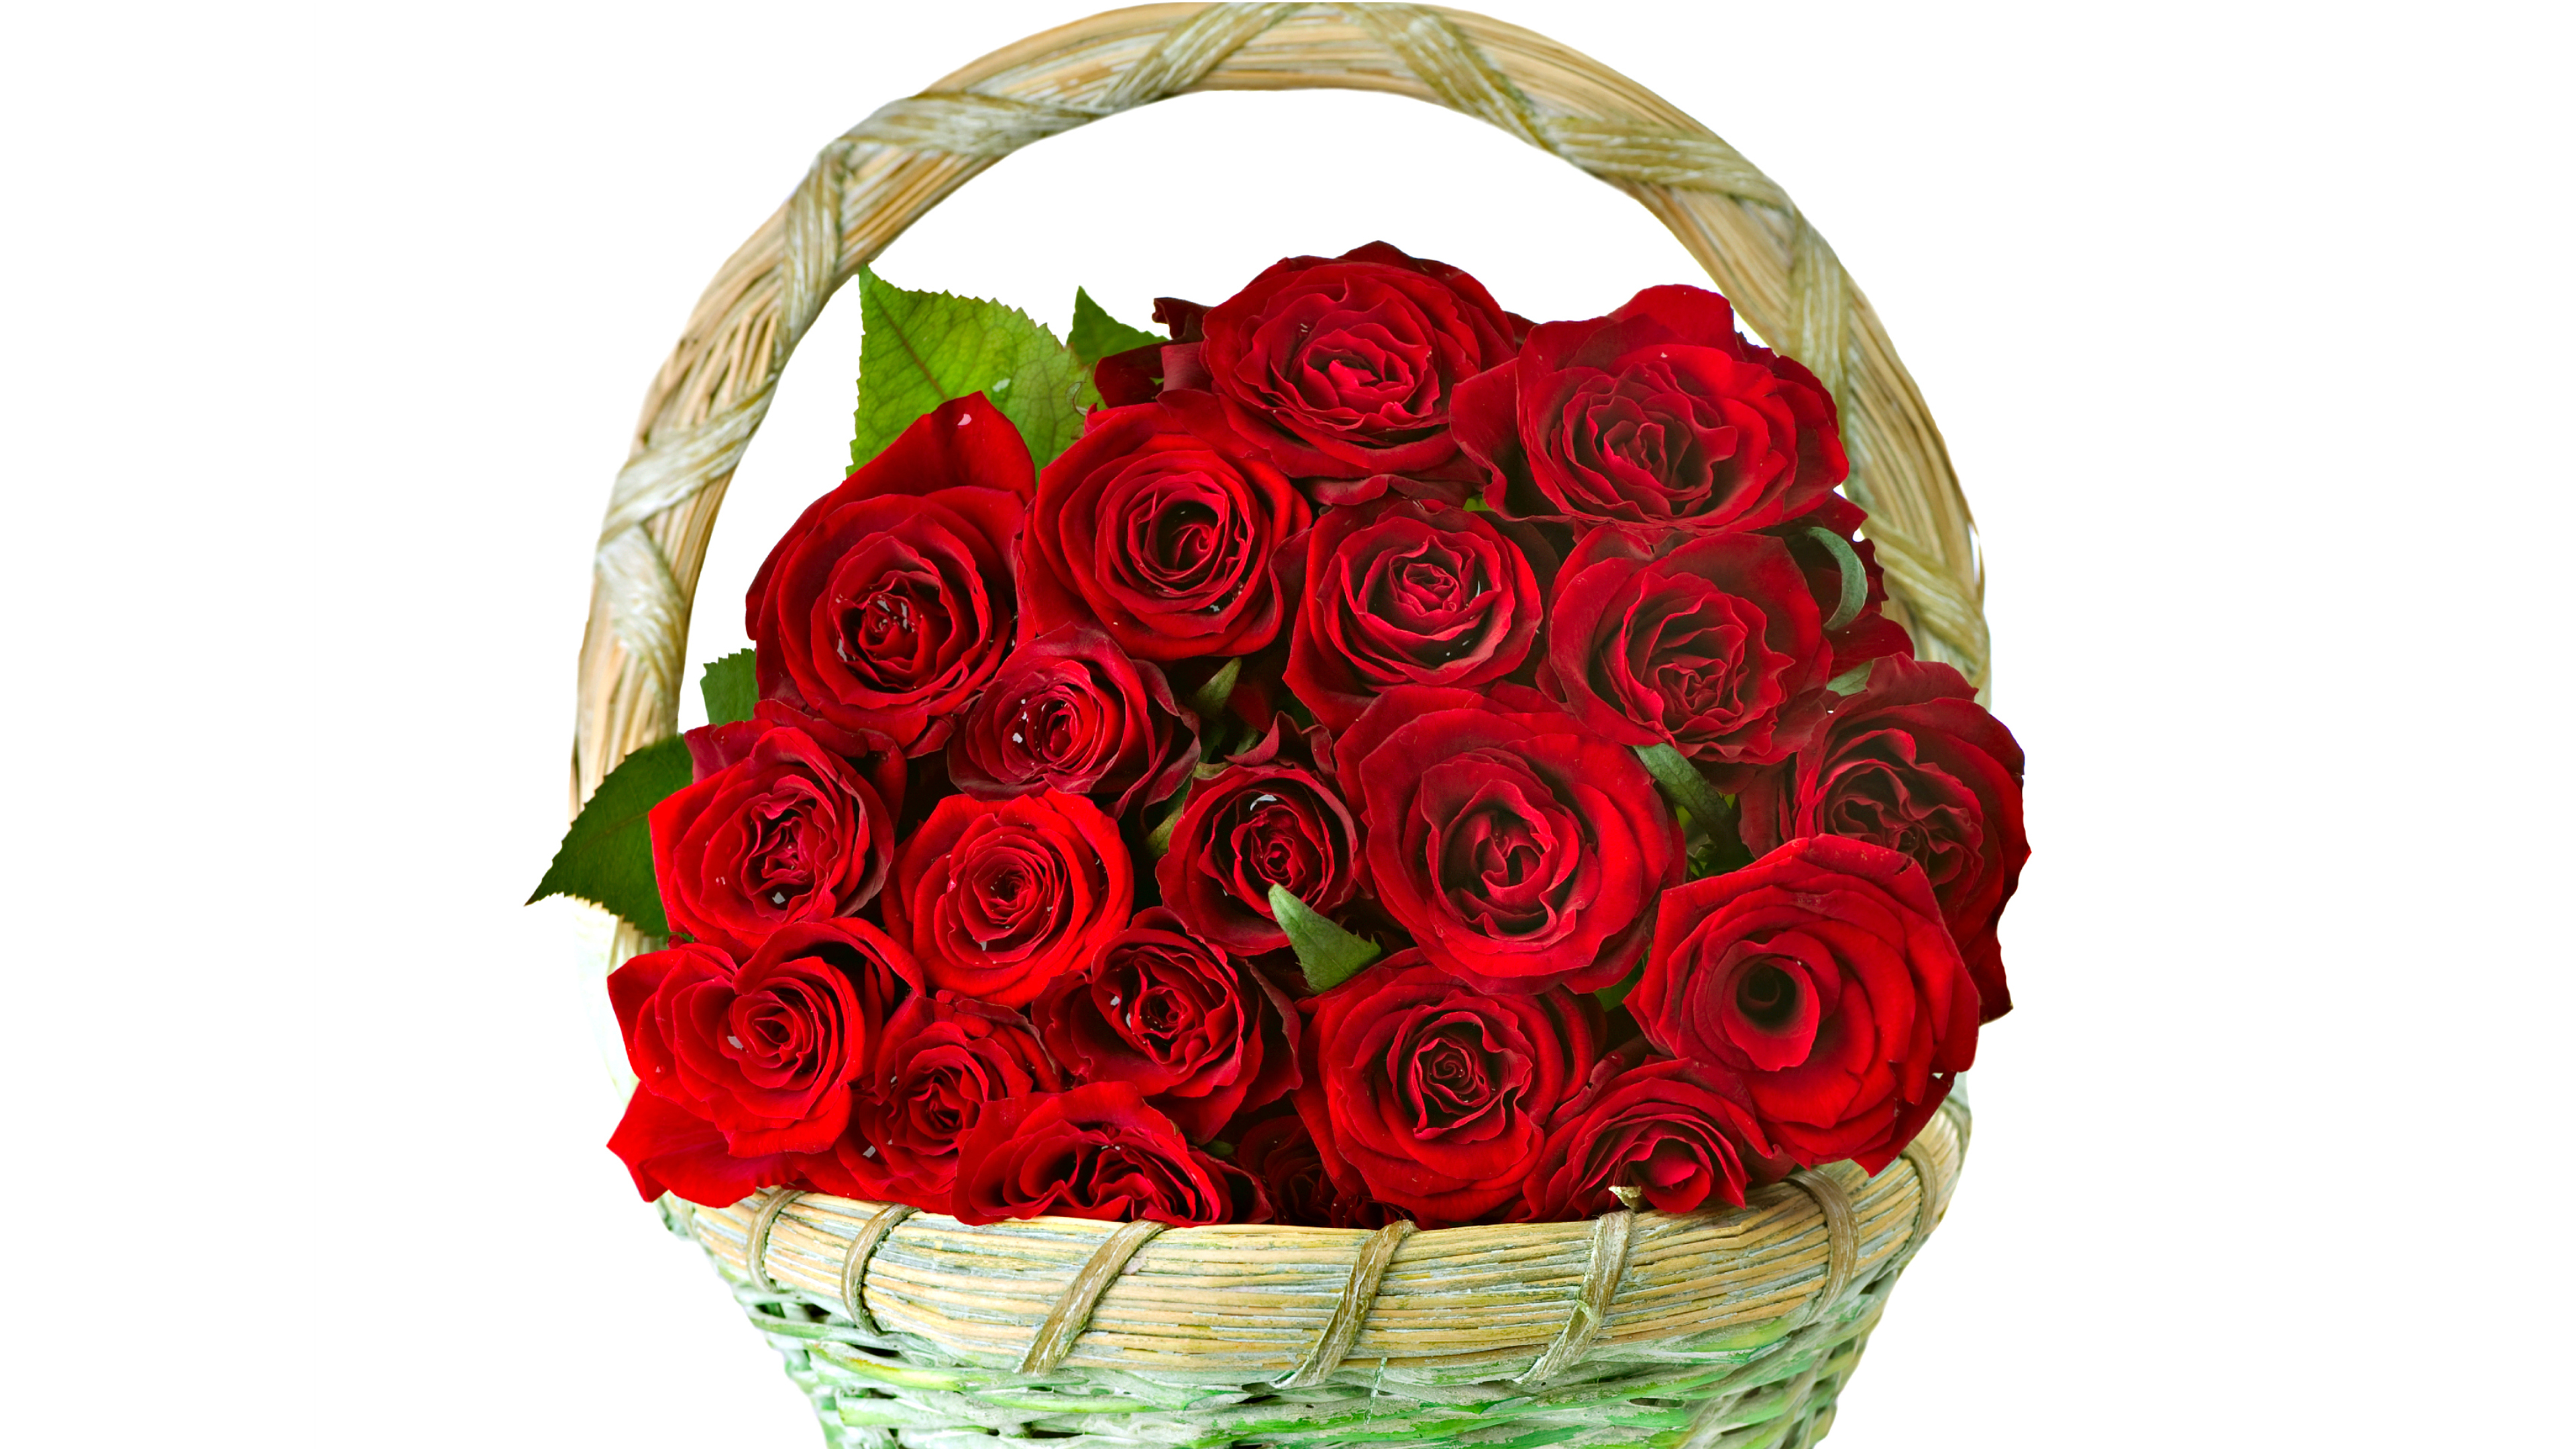 Bouquet Beautiful Red Roses Filled Basket For 8 March - Love Rose Beautiful Flowers , HD Wallpaper & Backgrounds